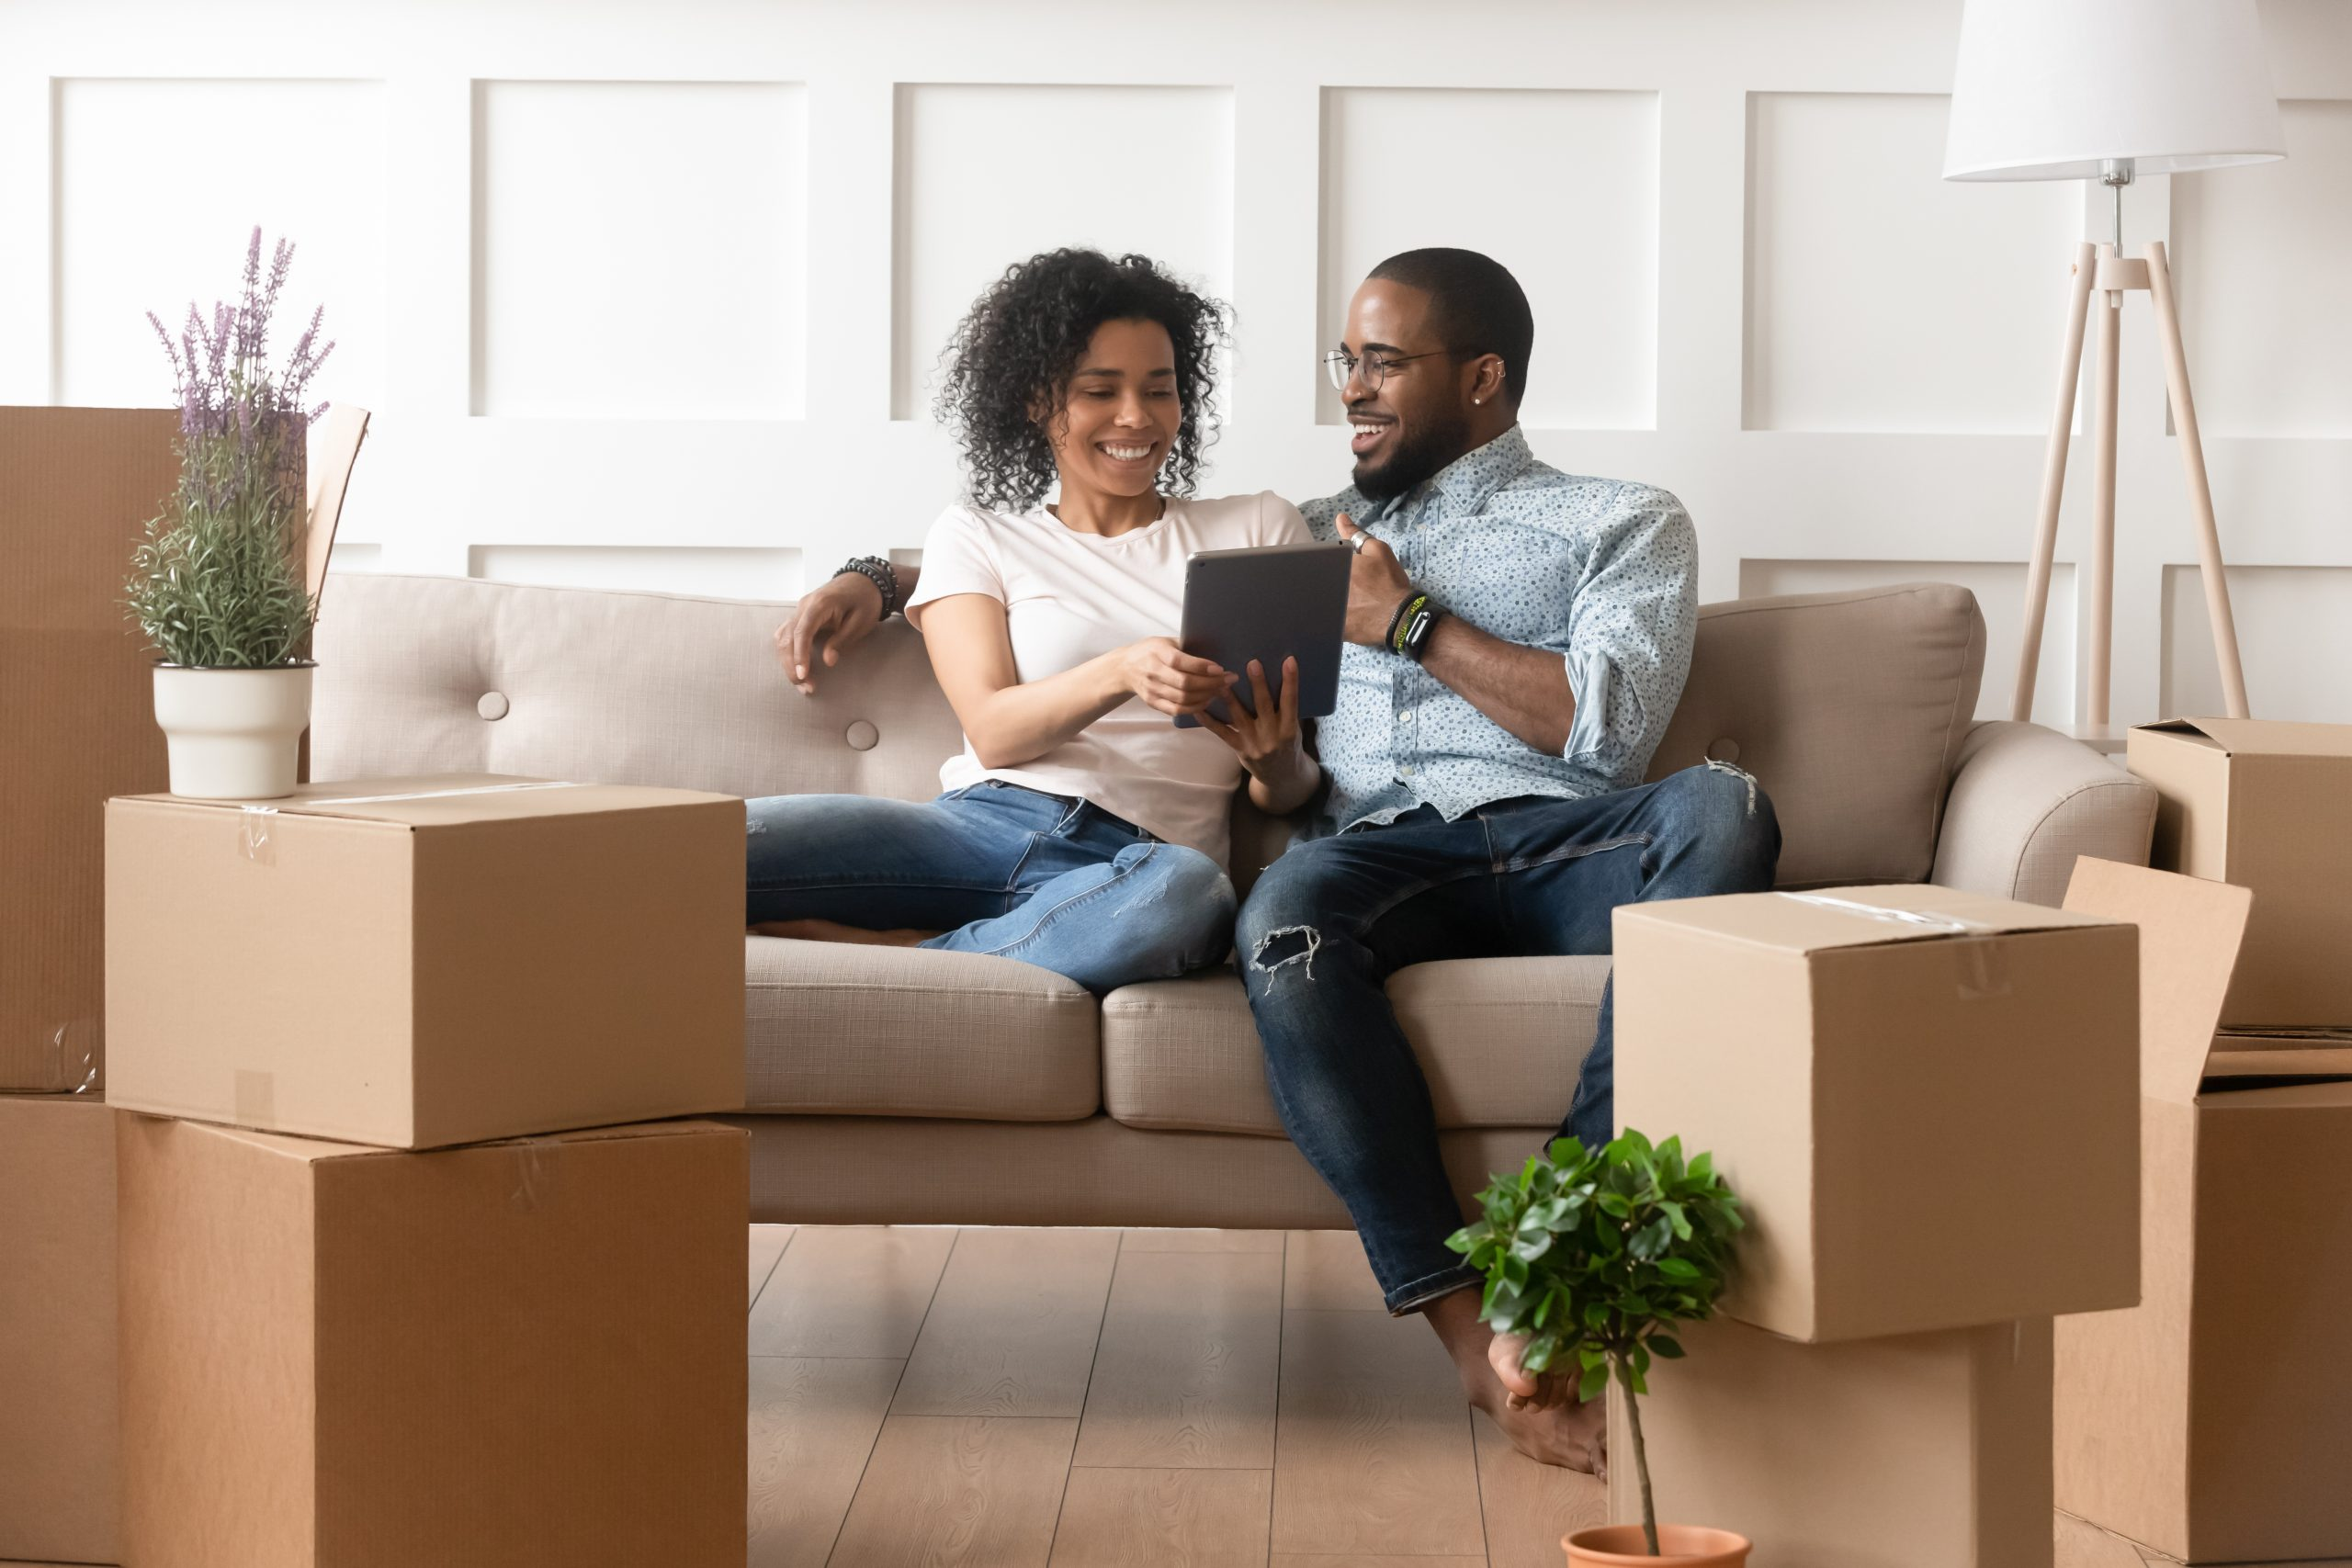 A husband and wife on a couch with moving boxes